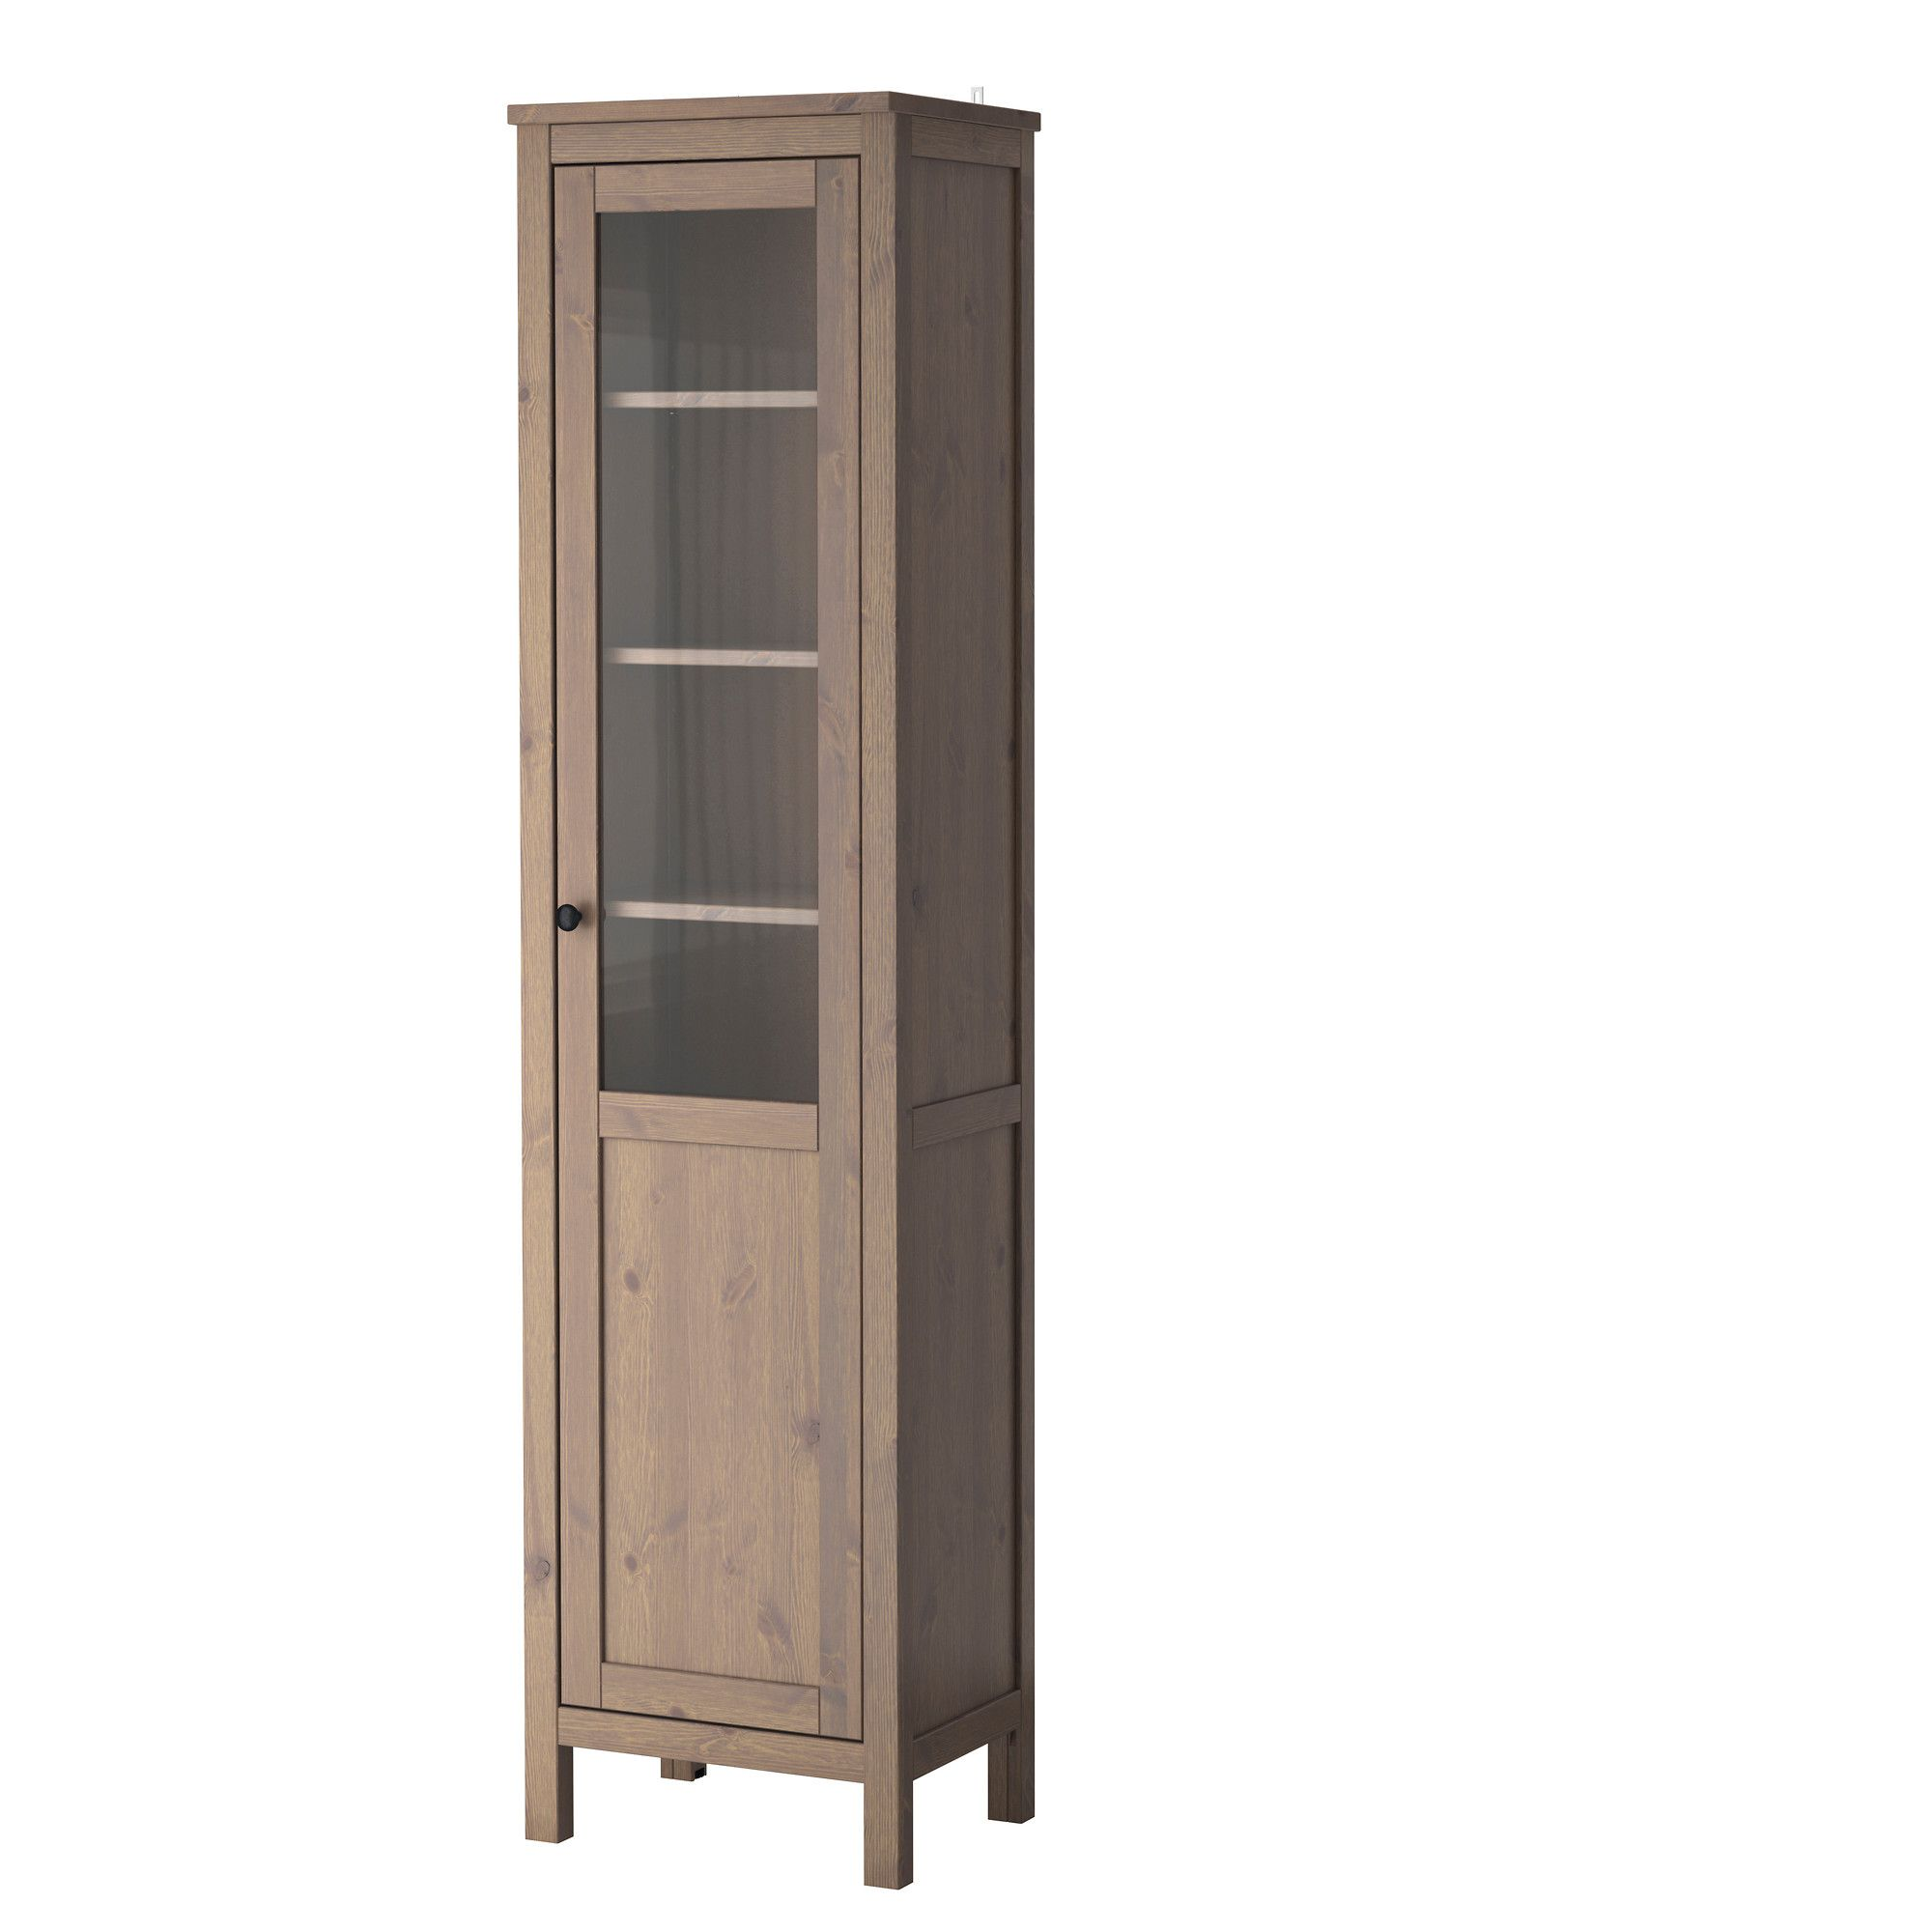 ikea solid wood kitchen cabinets unit led lights hemnes cabinet with panel glass door white stain